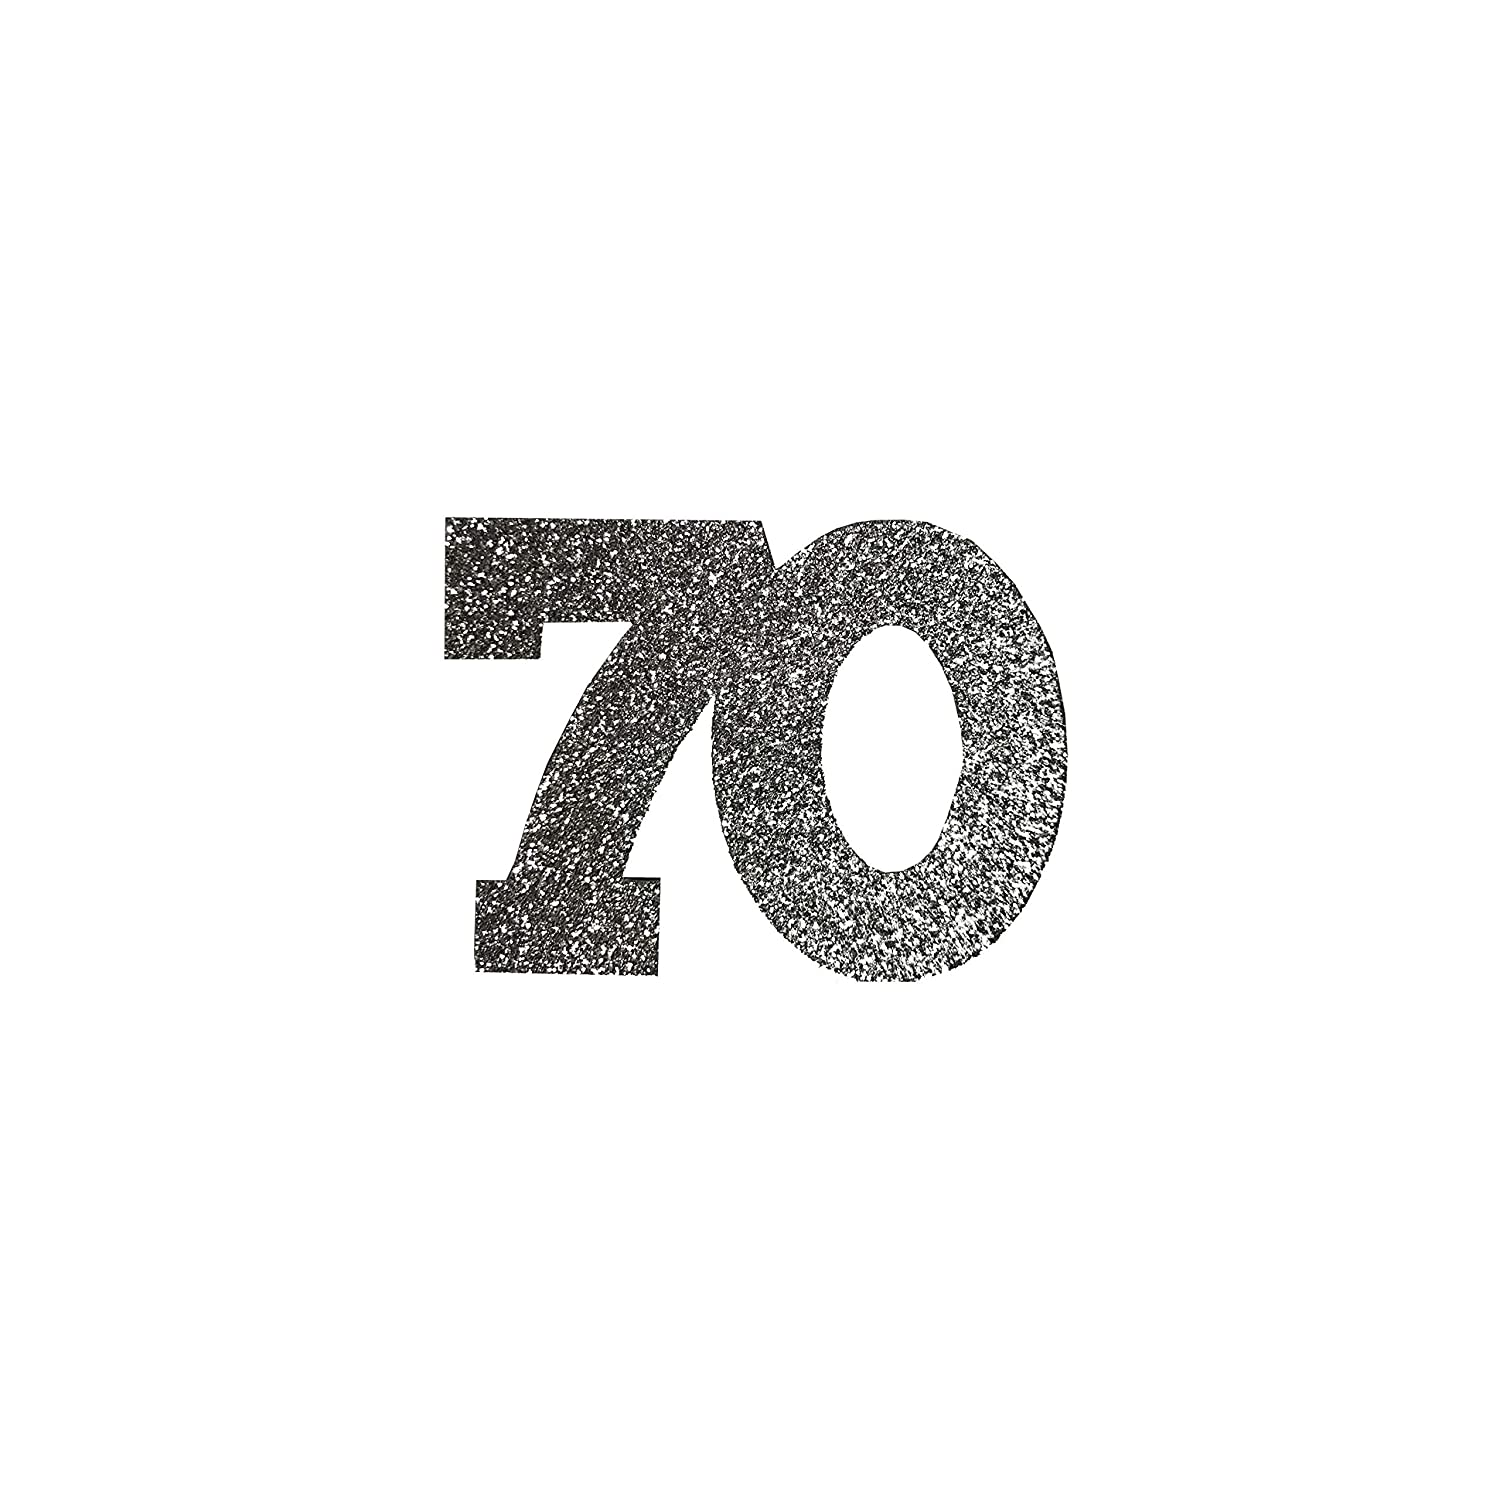 Seventieth Birthday Party Decorations 70th Anniversary Confetti 70th Birthday Glitter Table Confetti Parents Anniversary Party Decor Custom Number 70 Confetti Adult Birthday Party Ideas 25 Pack